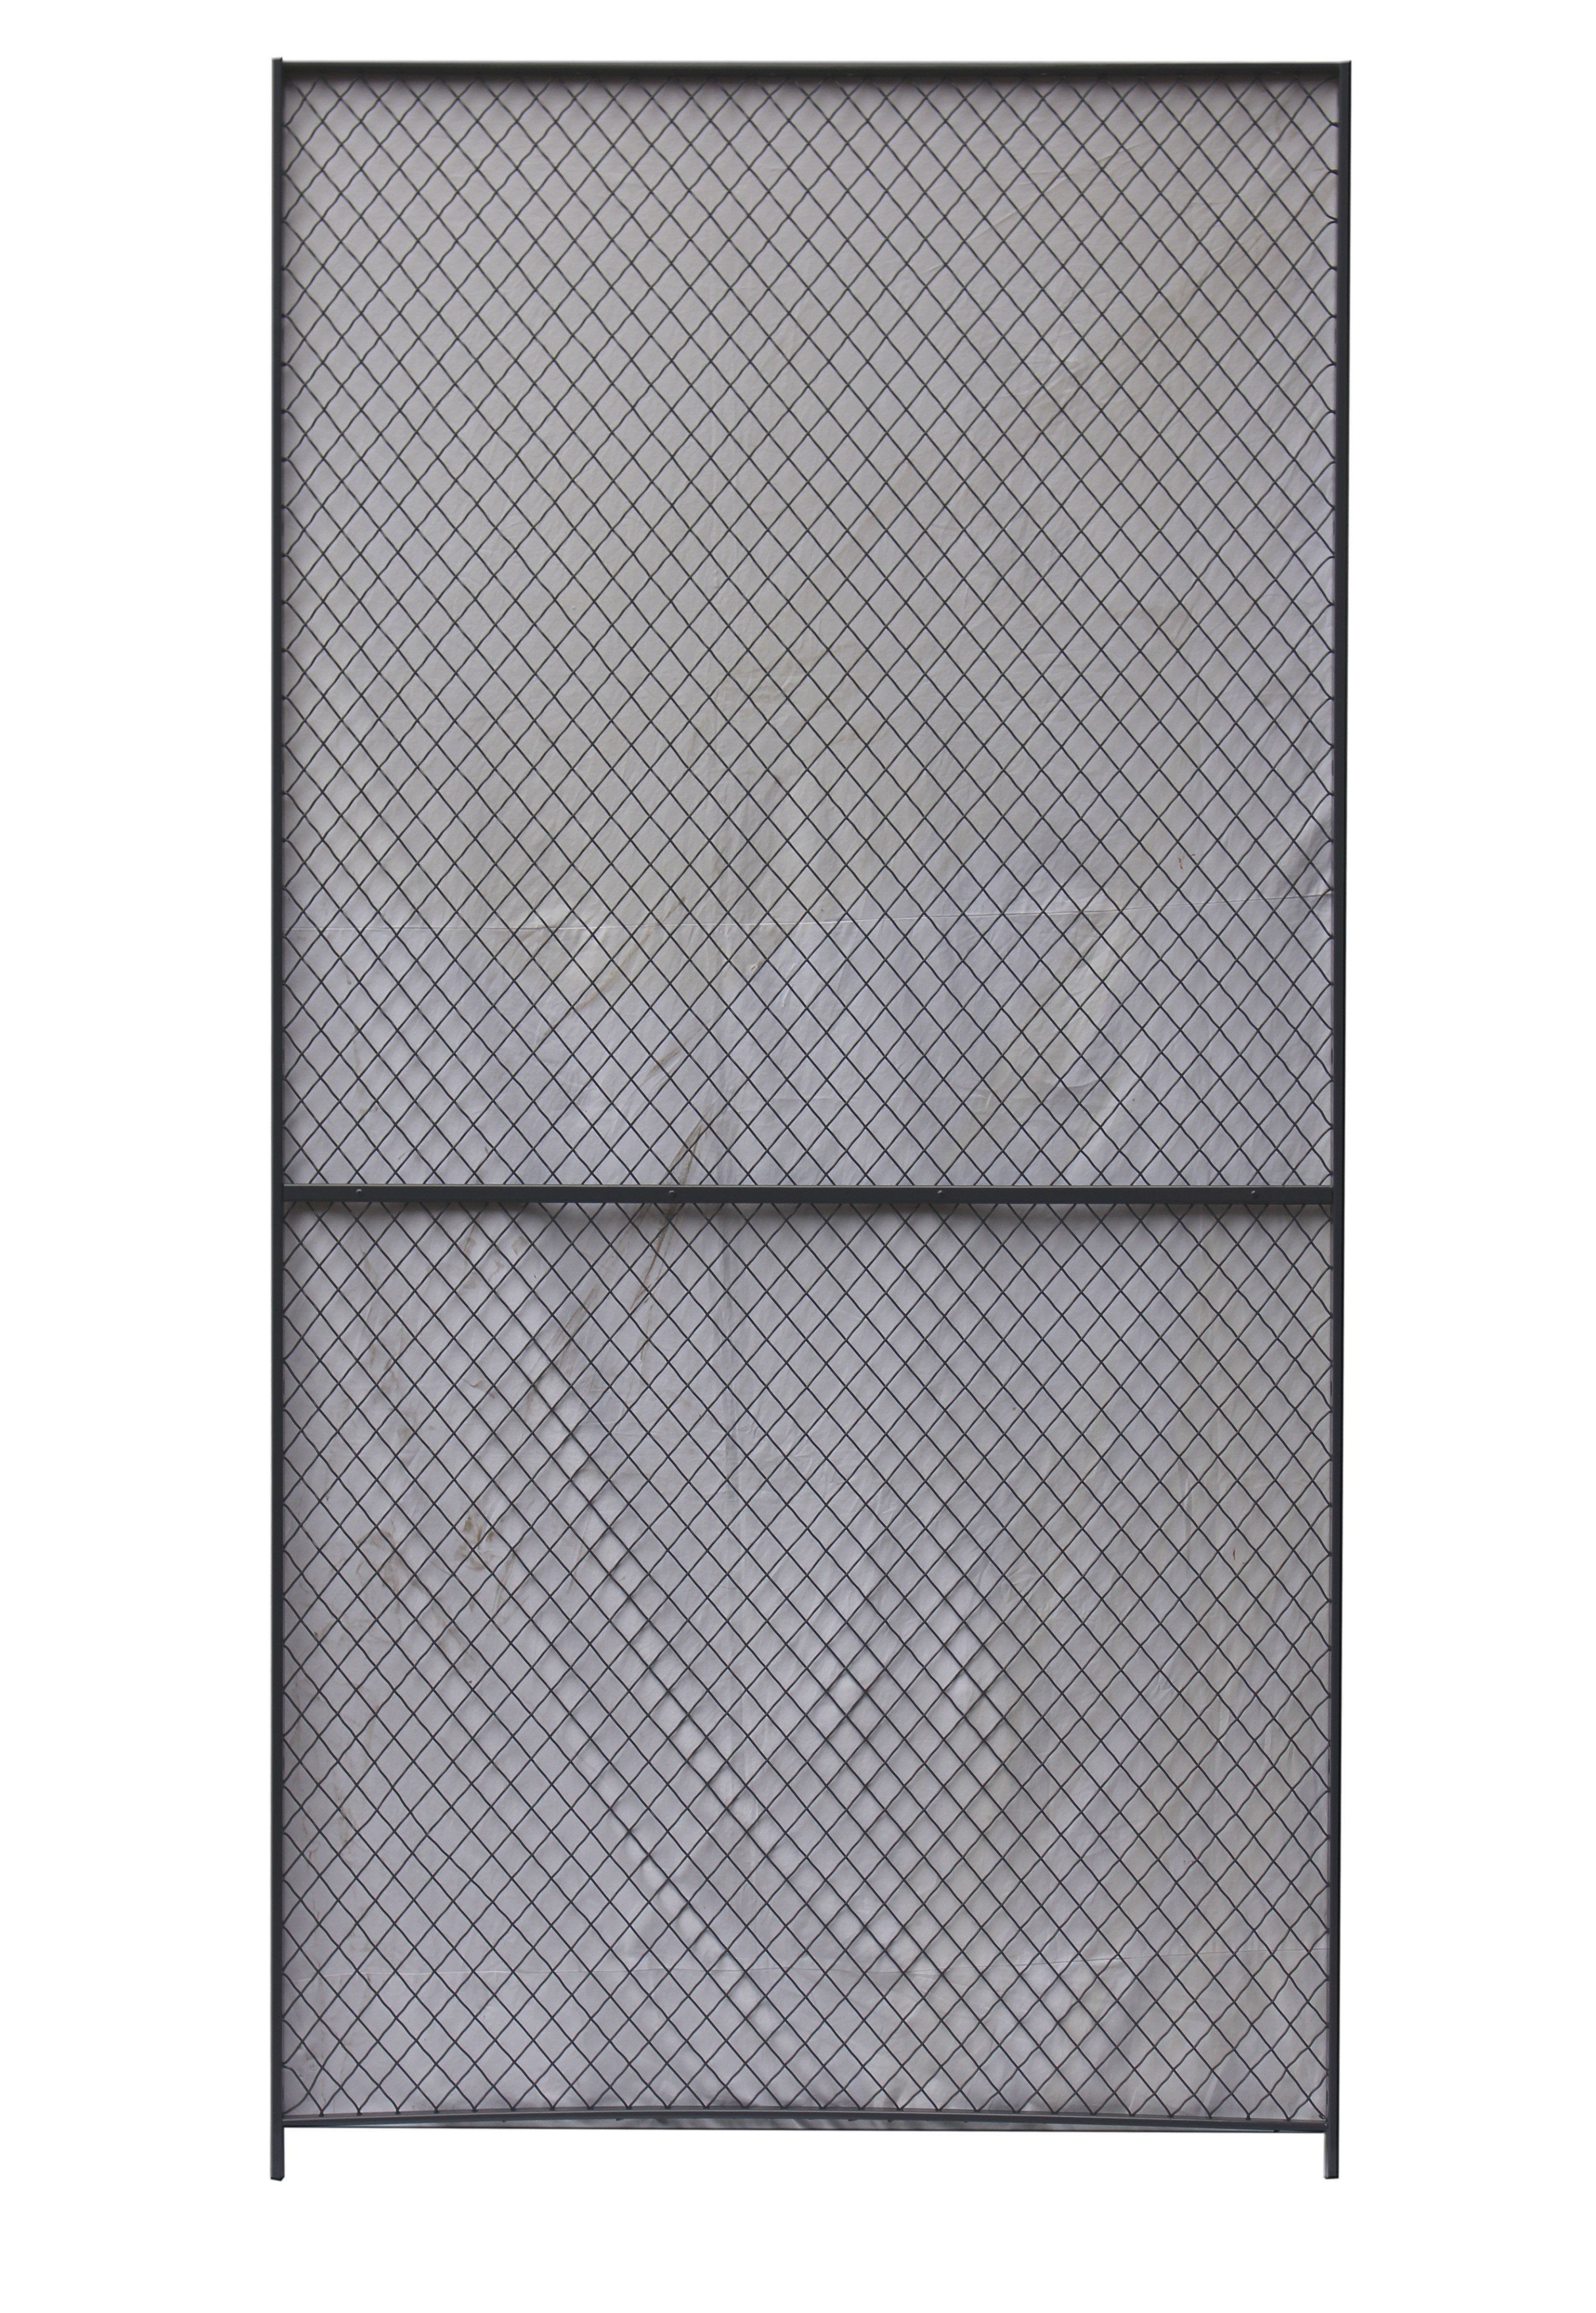 Security Woven Wire Mesh Partition Panels 10 Gauge Clinched 8 Feet ...